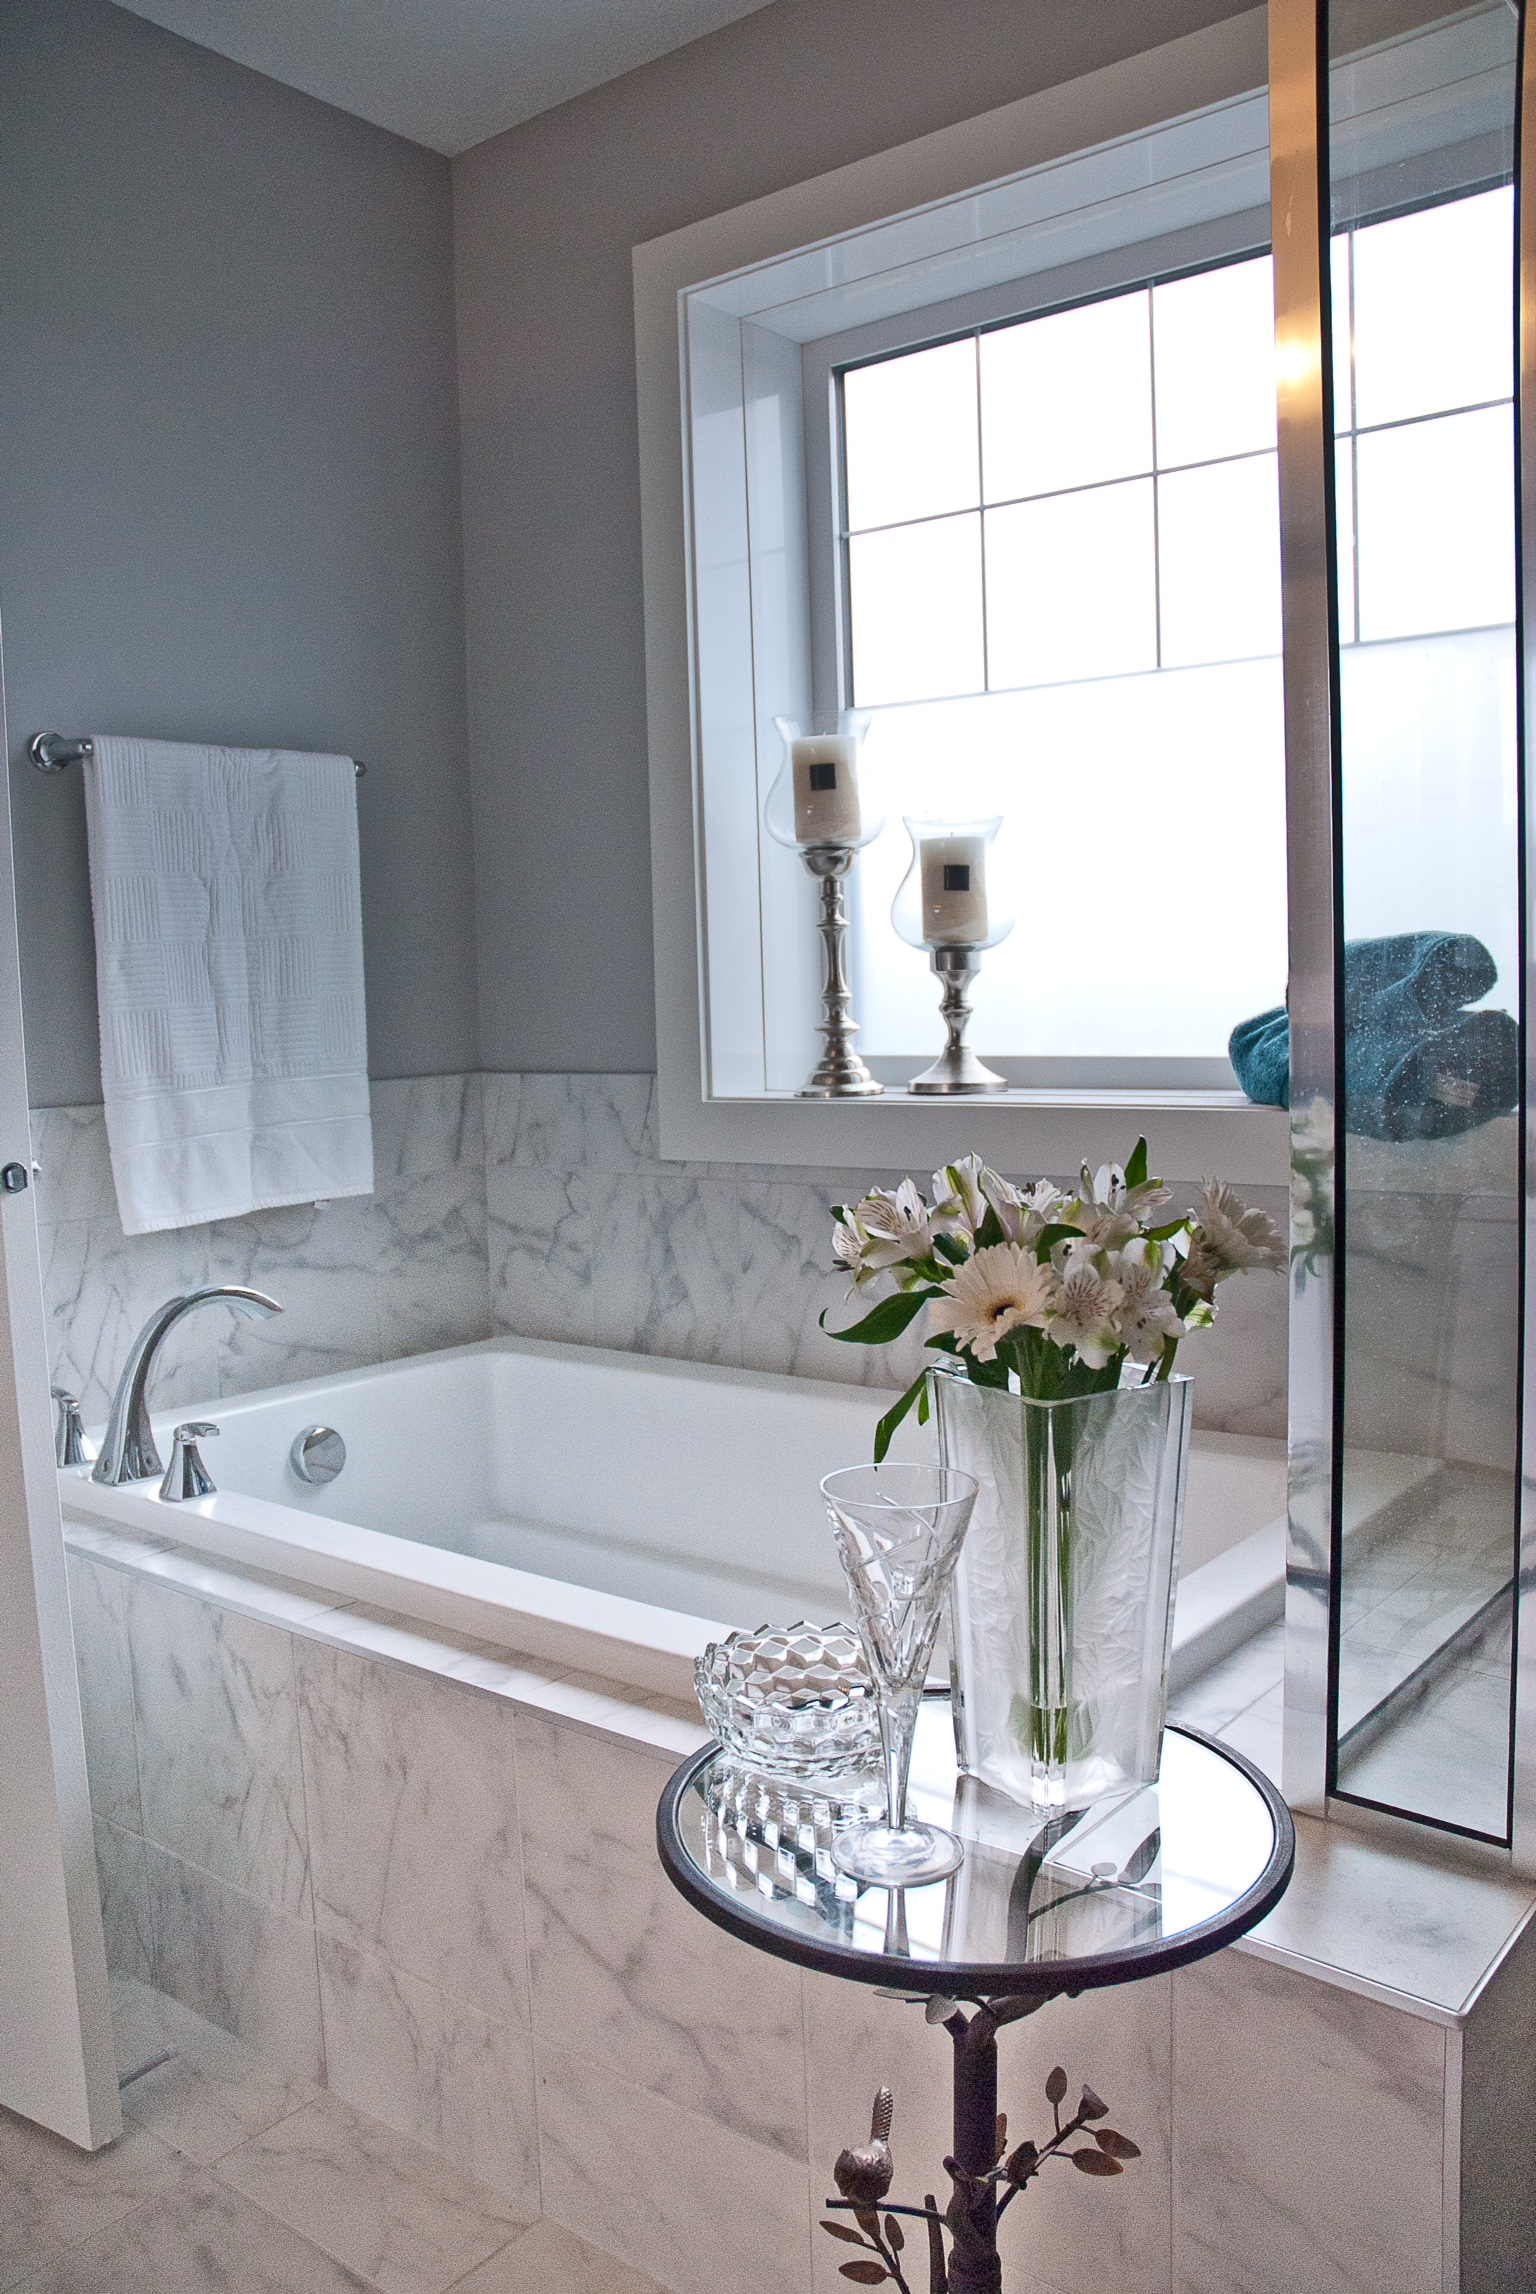 Bathrooms Julie Roberts Interior Design Consultant